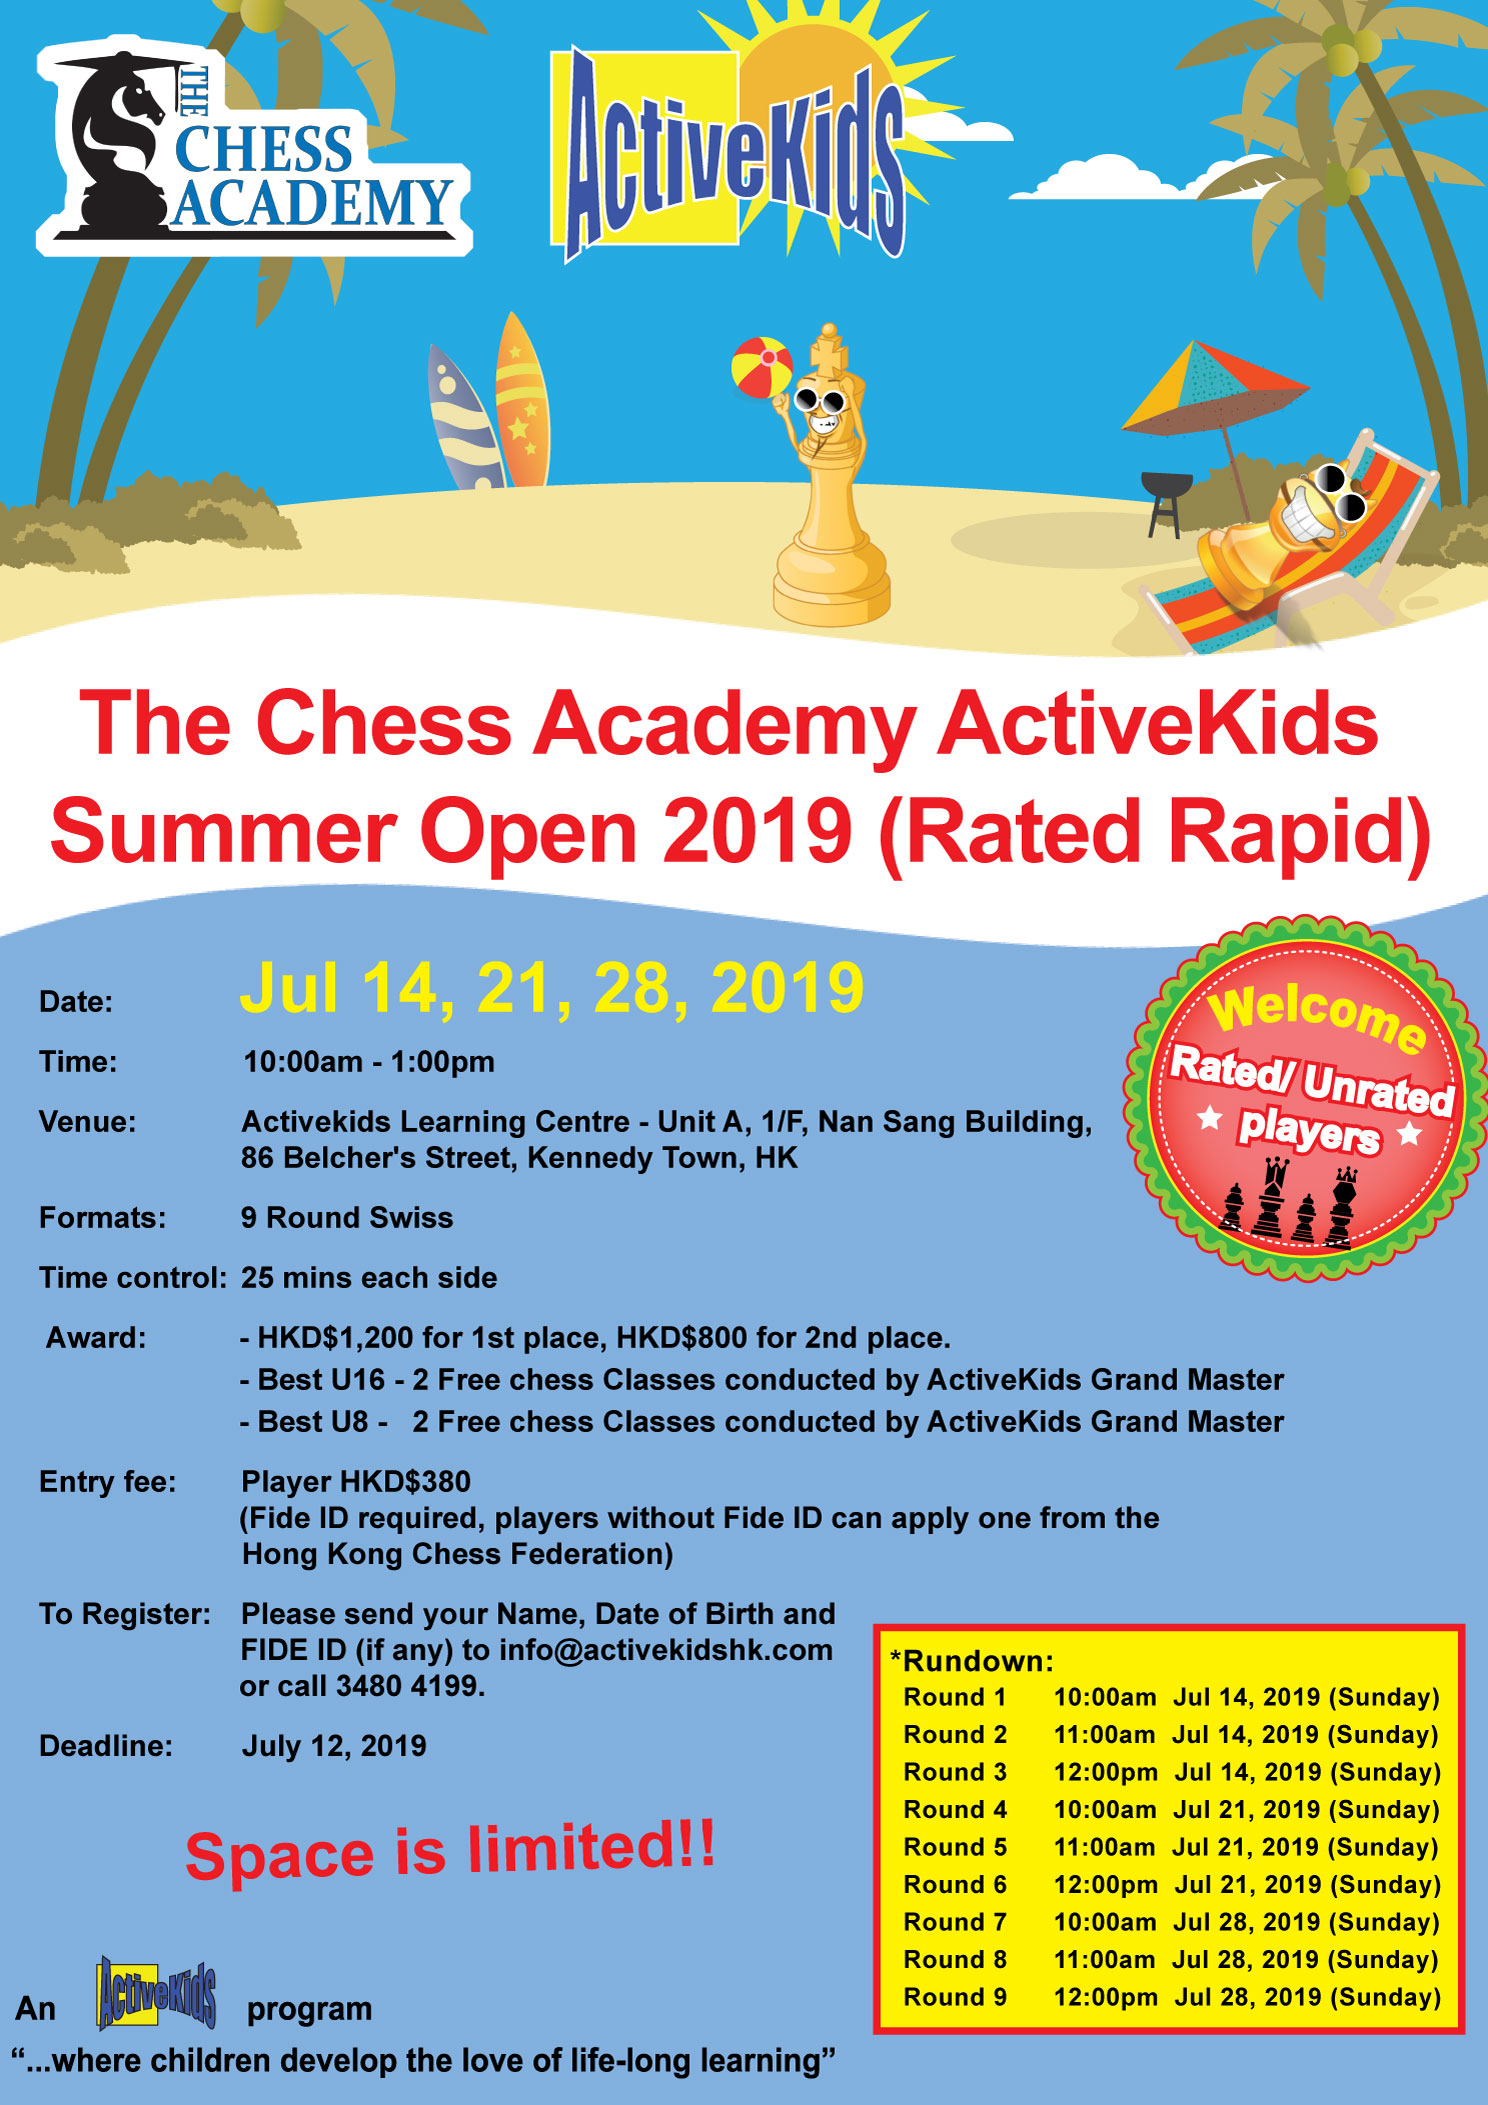 The Chess Academy ActiveKids Summer Open 2019 (Rated Rapid)